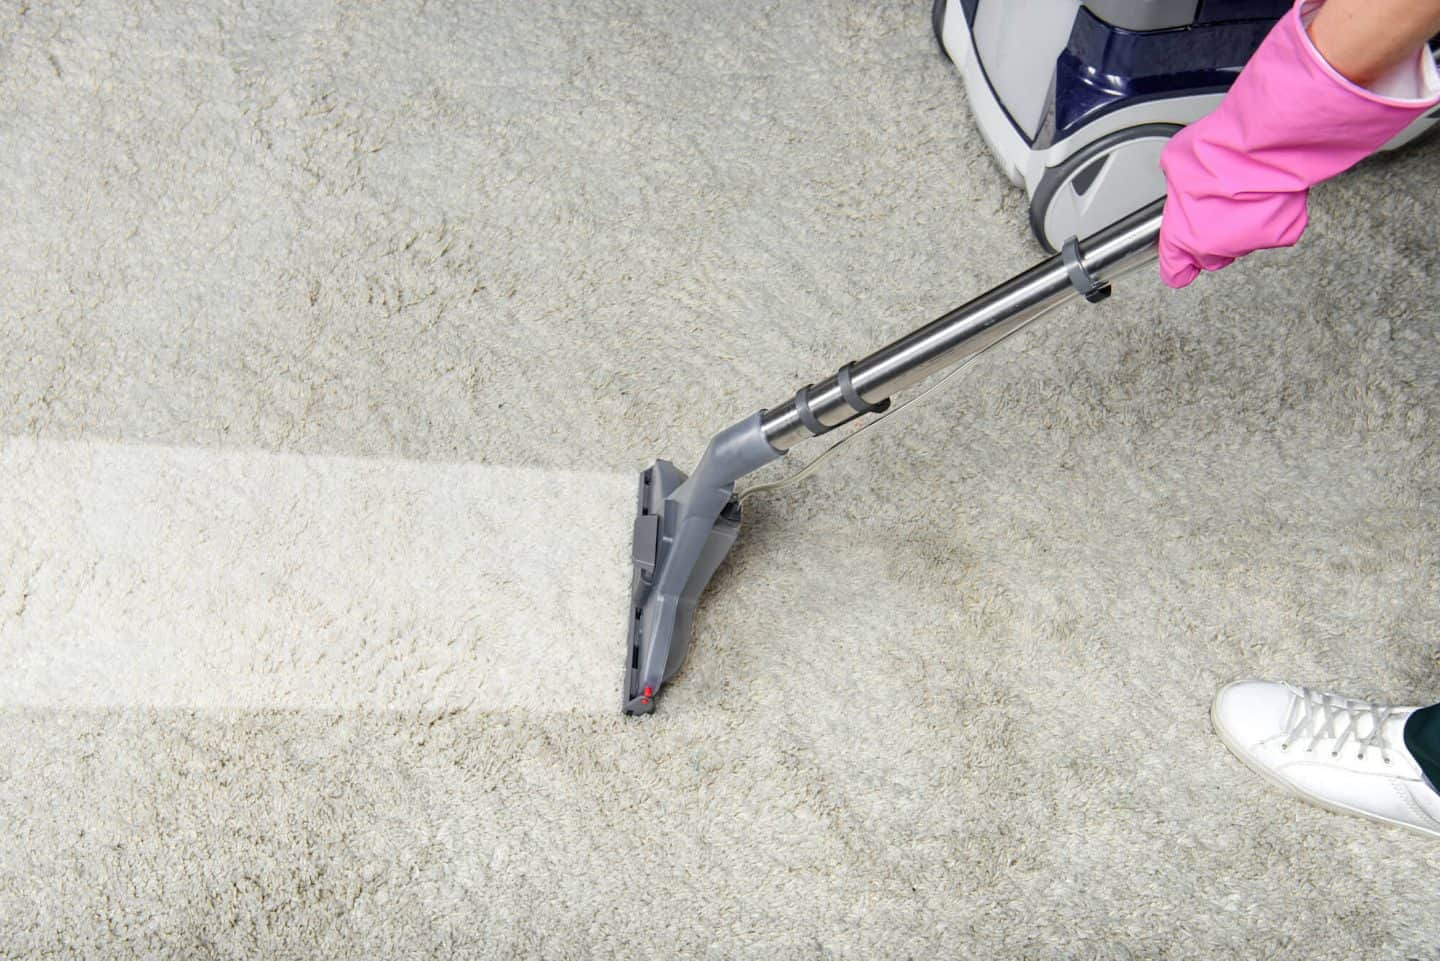 What Risks Hide a Dirty Carpet at Home